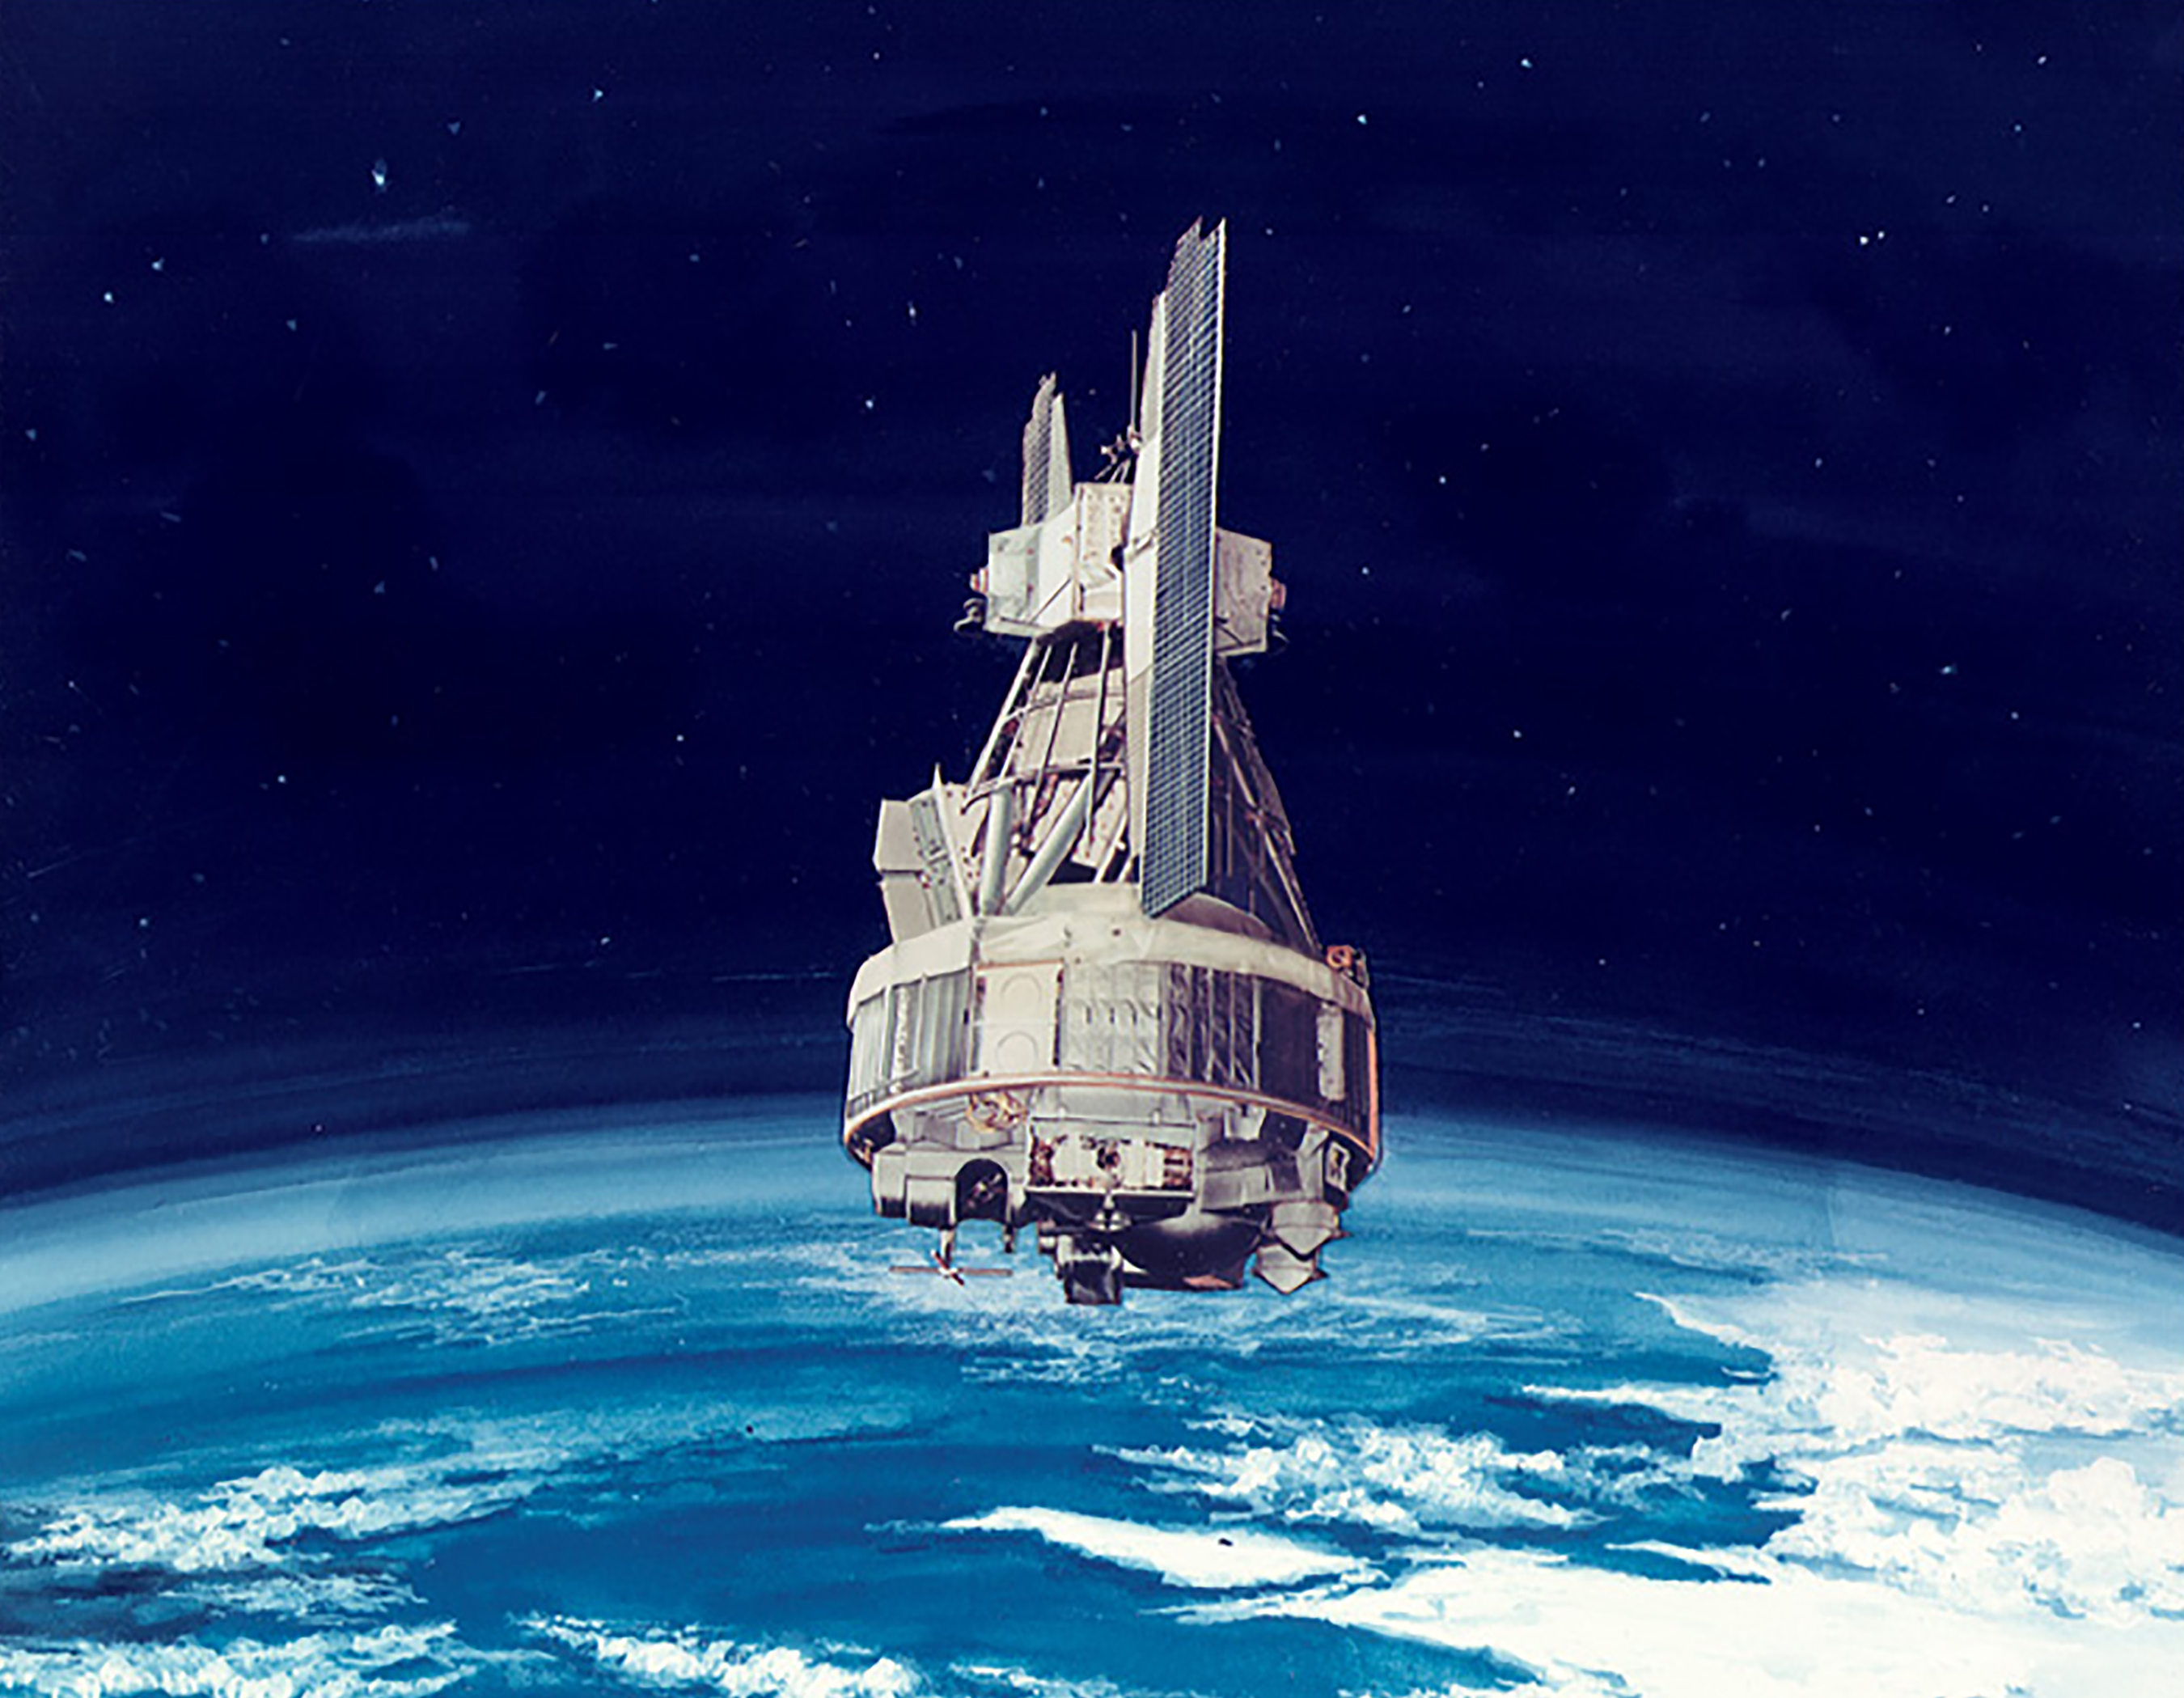 Artist's rendering of the Nimbus-3 spacecraft